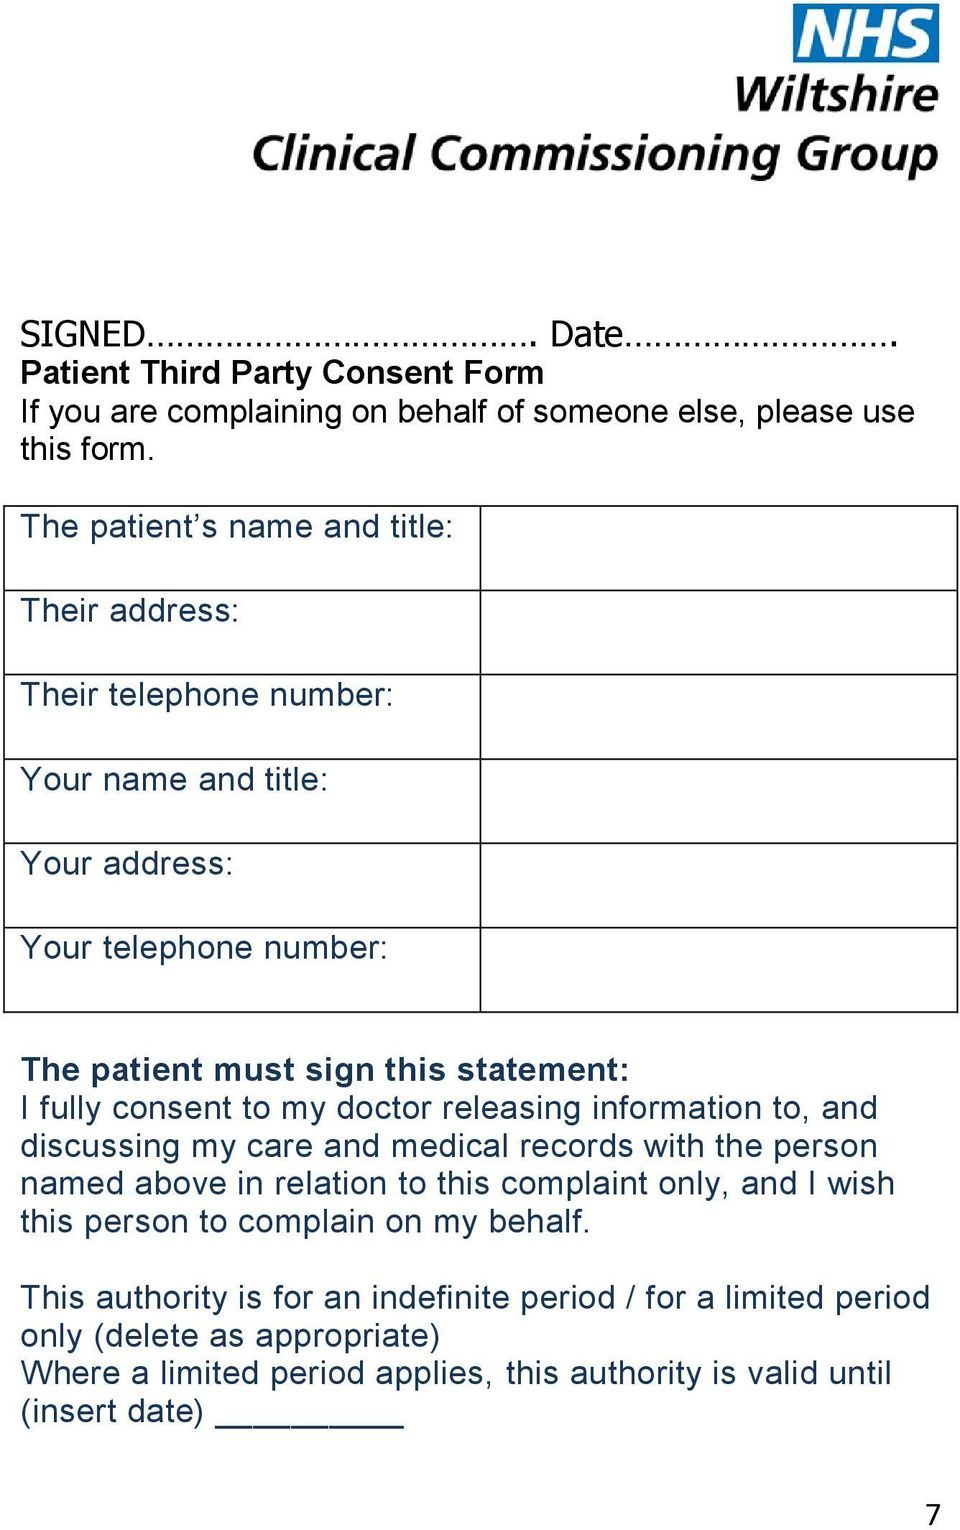 fully consent to my doctor releasing information to, and discussing my care and medical records with the person named above in relation to this complaint only, and I